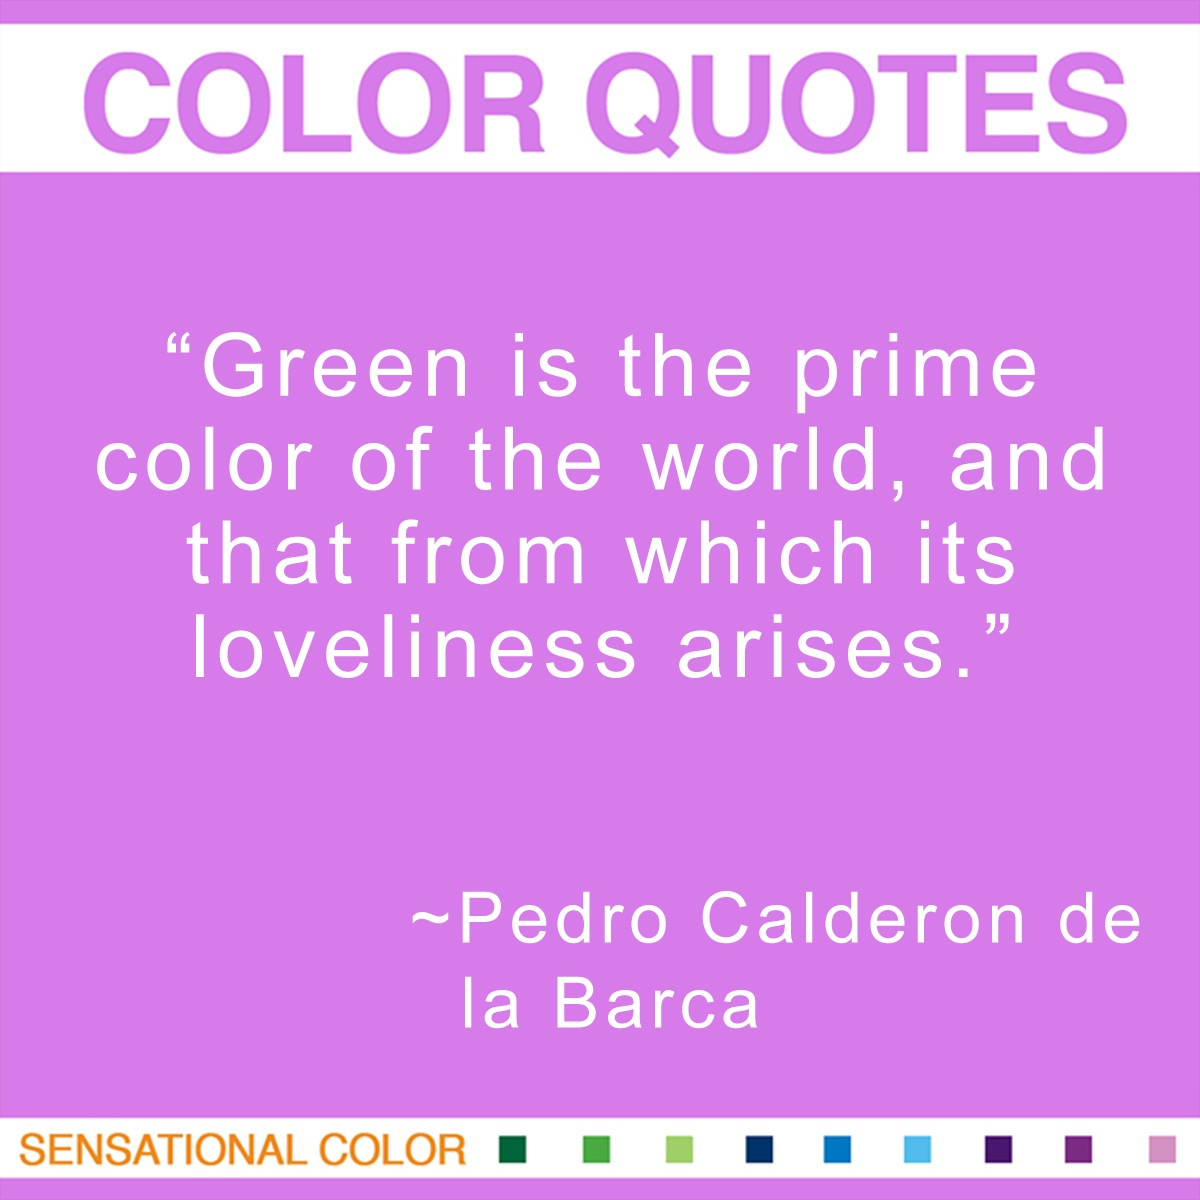 """Green is the prime color of the world, and that from which its loveliness arises."" - Pedro Calderon"